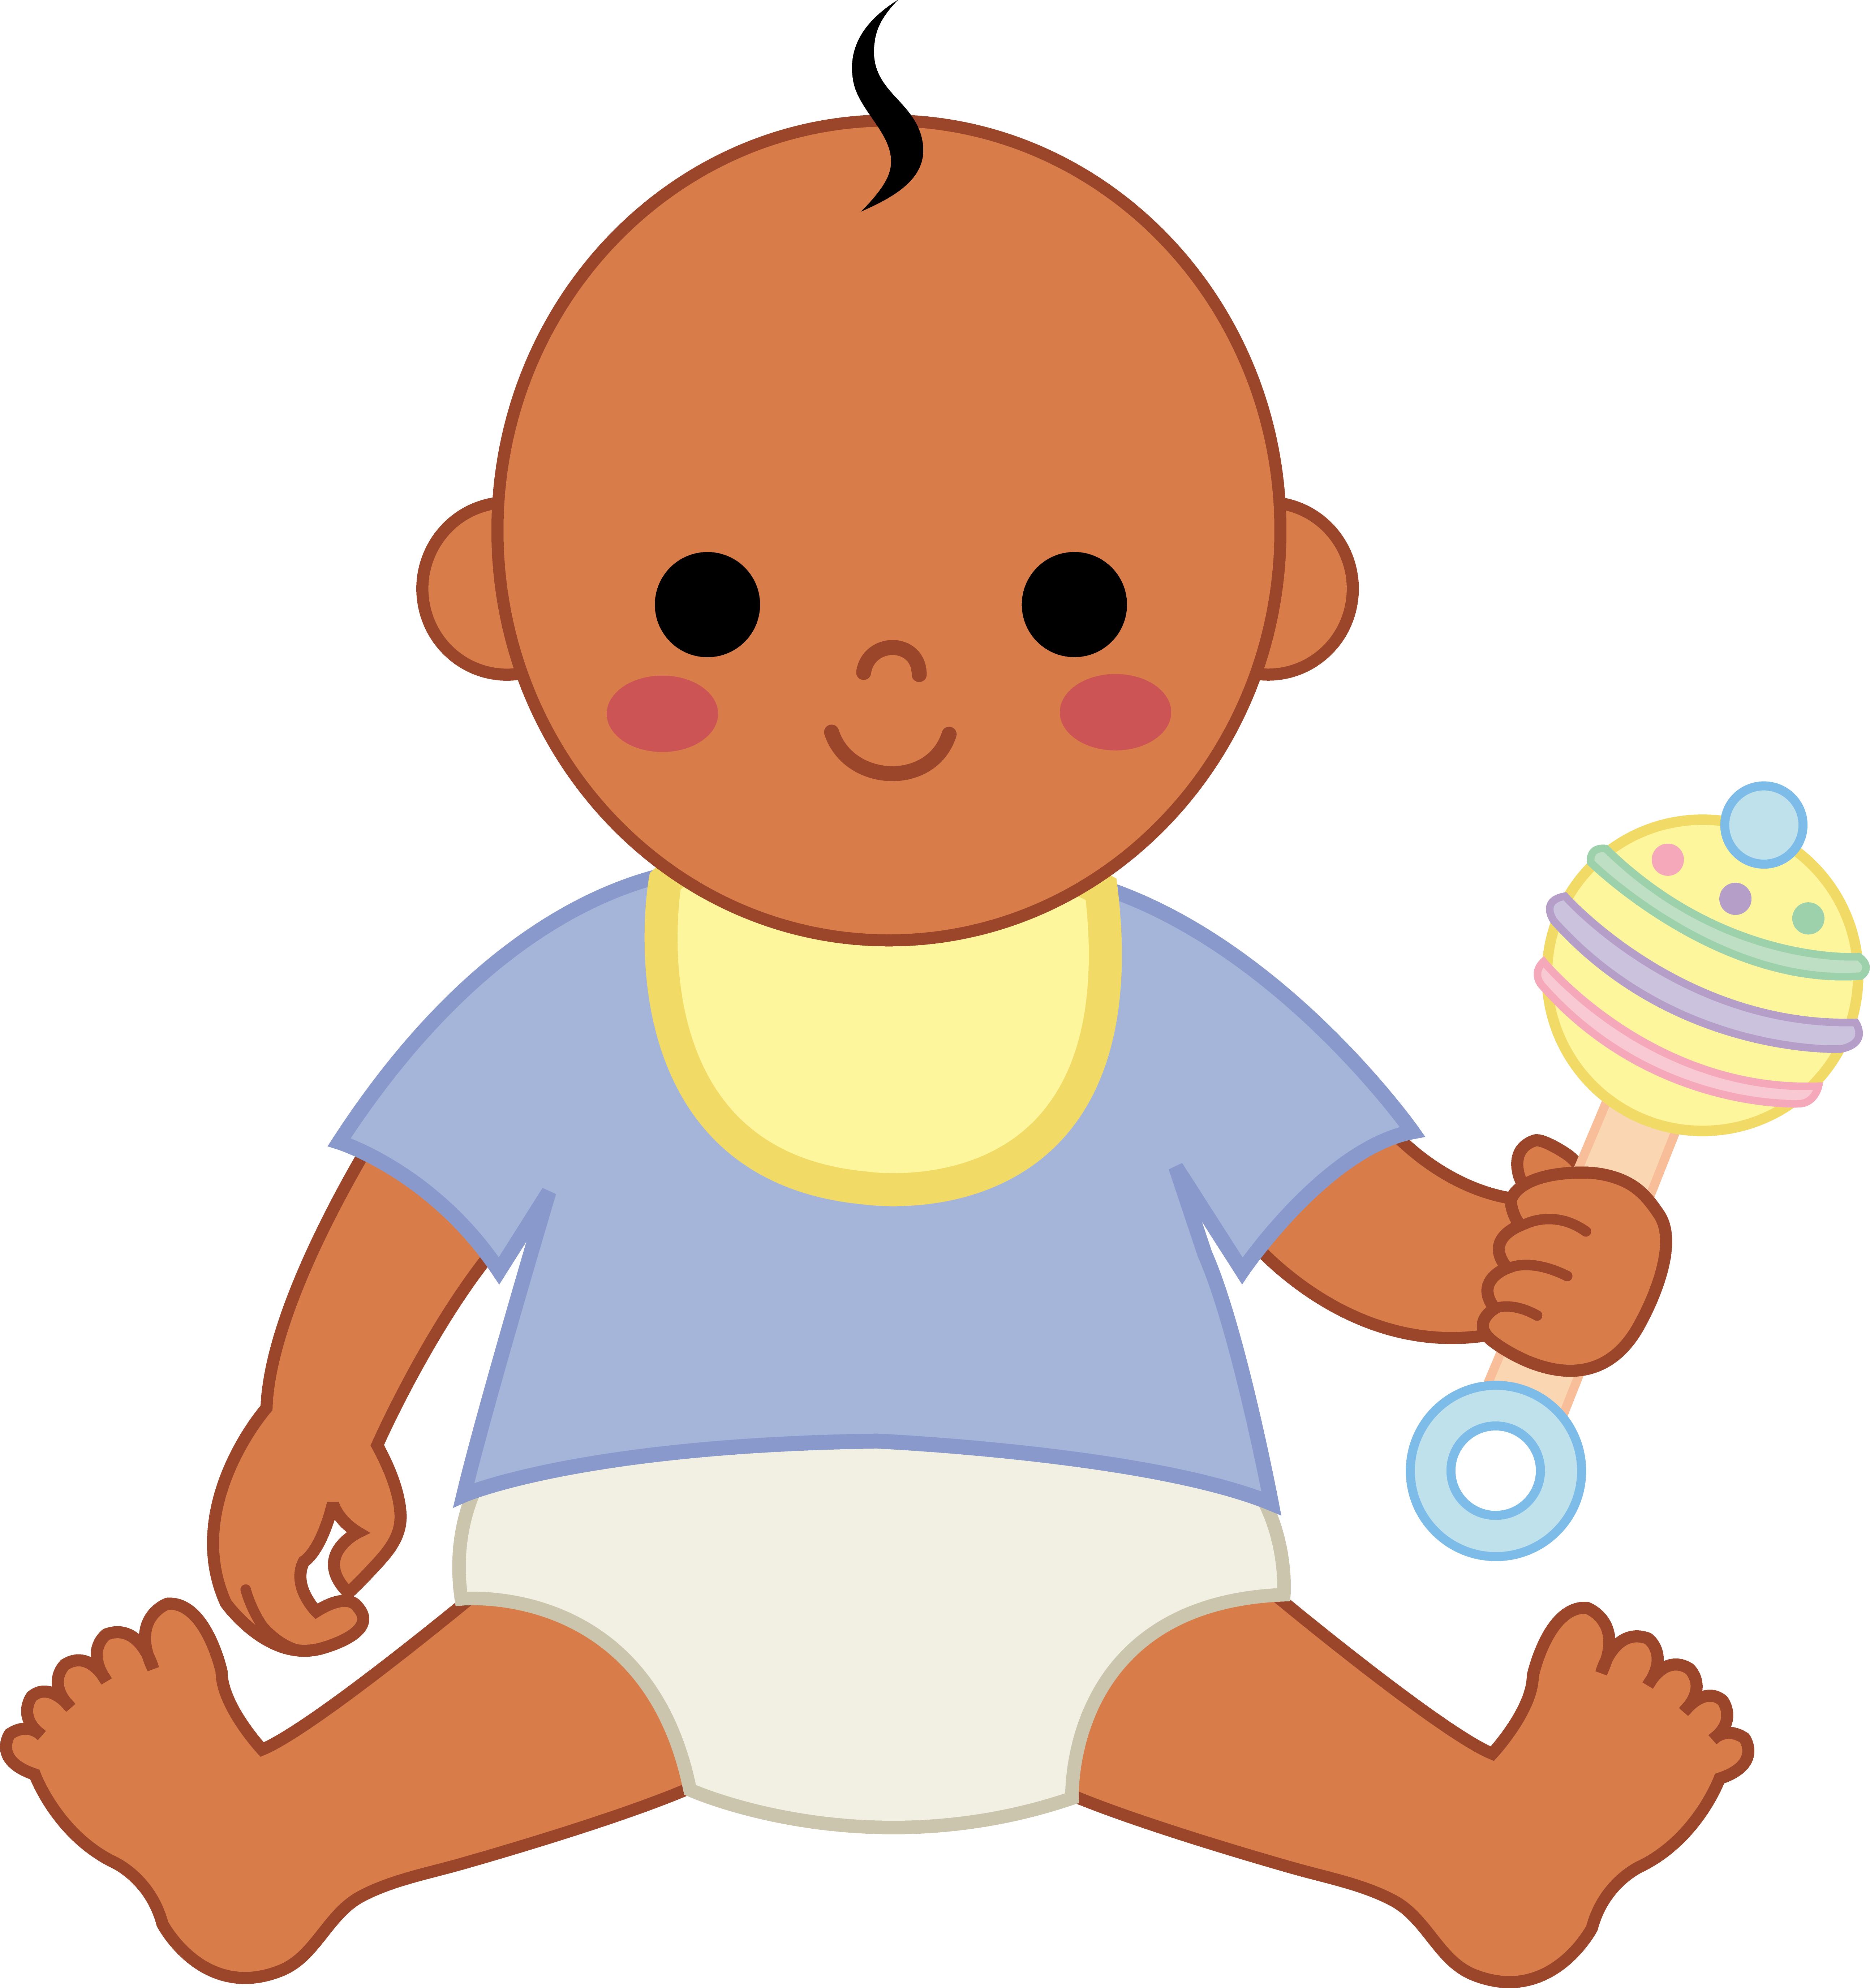 cute baby clipart | free download best cute baby clipart on